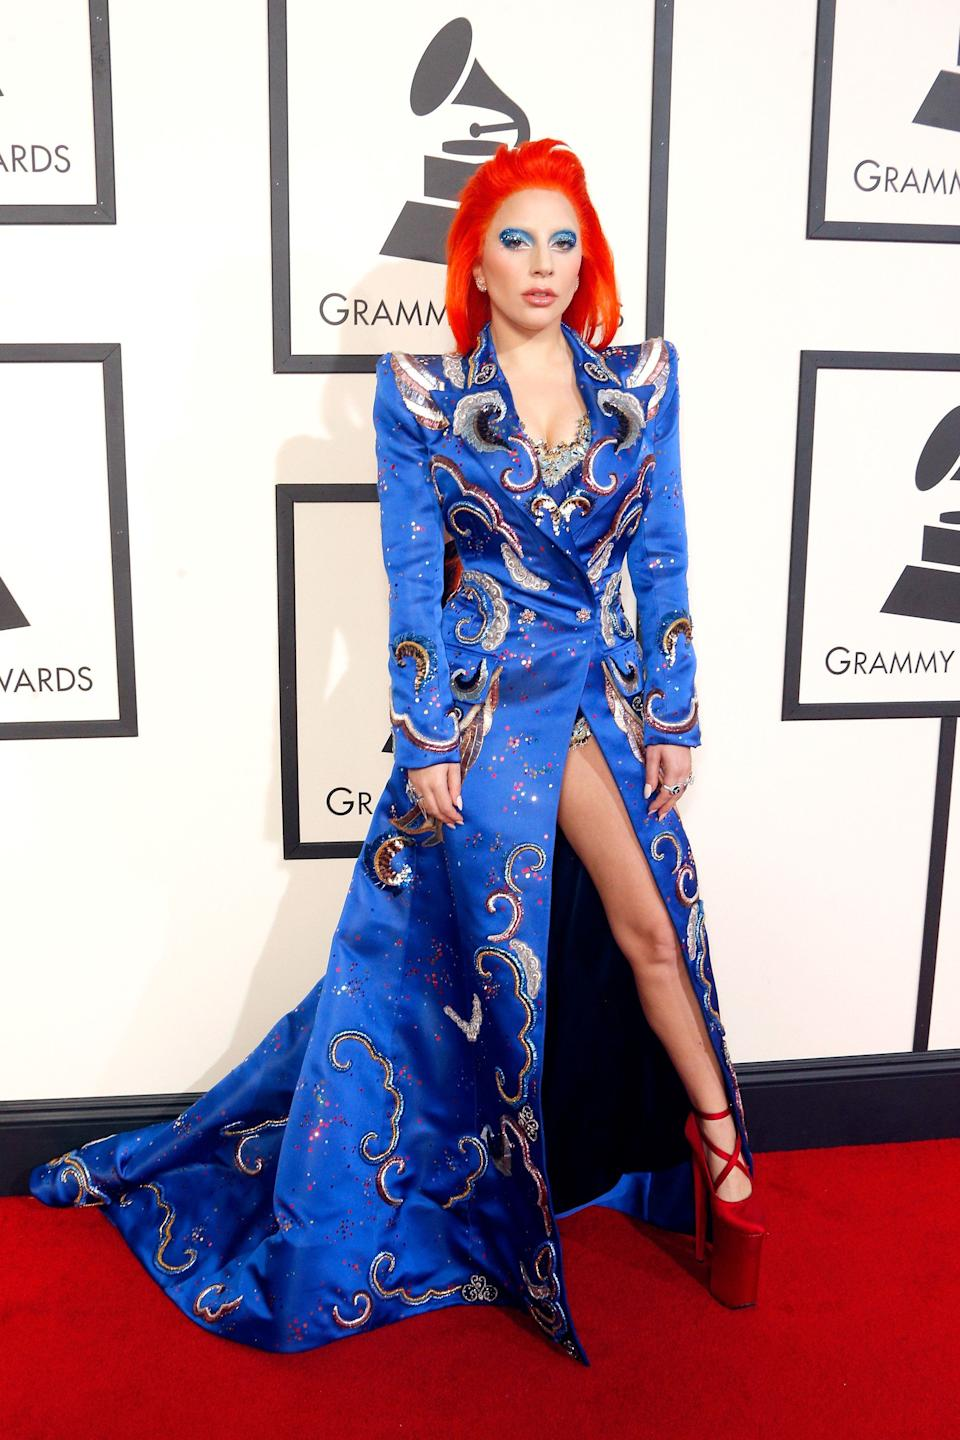 Gaga wears a Bowie-inspired design by Marc Jacobs at the 2016 Grammy Awards.